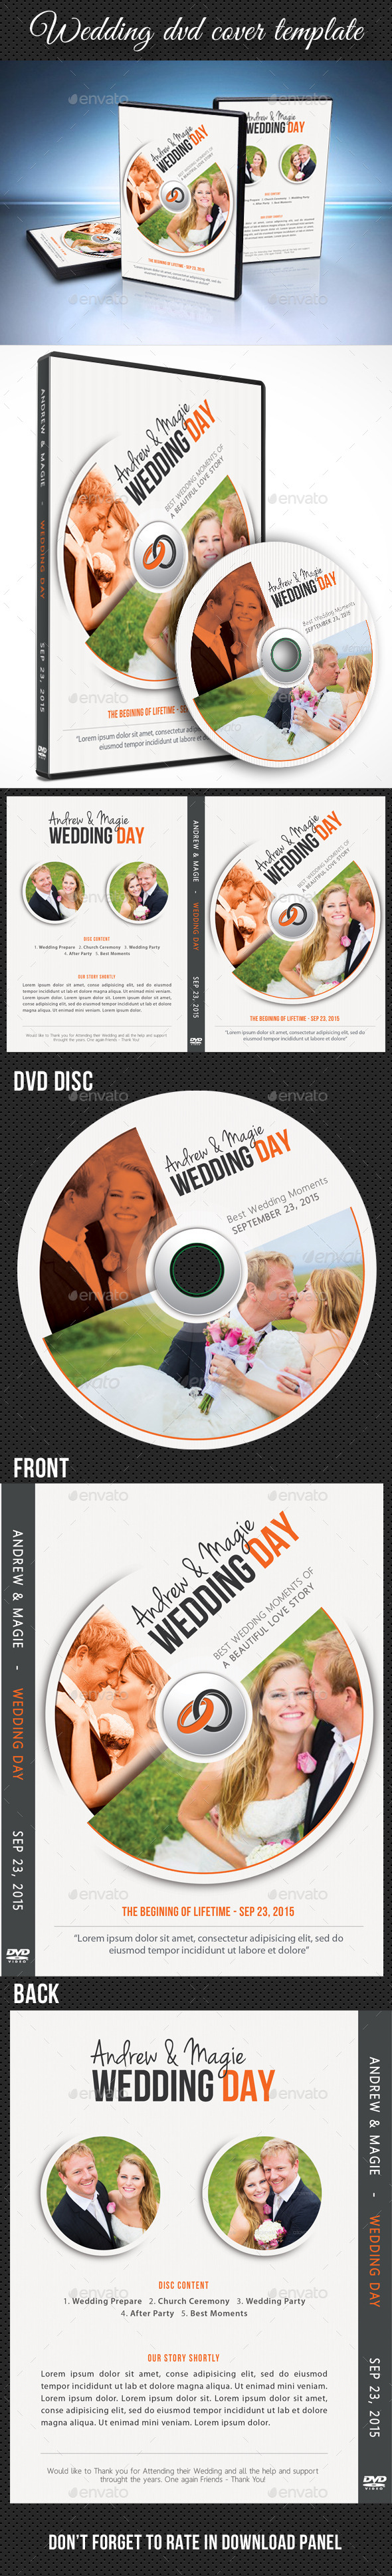 Wedding DVD Cover Template 13